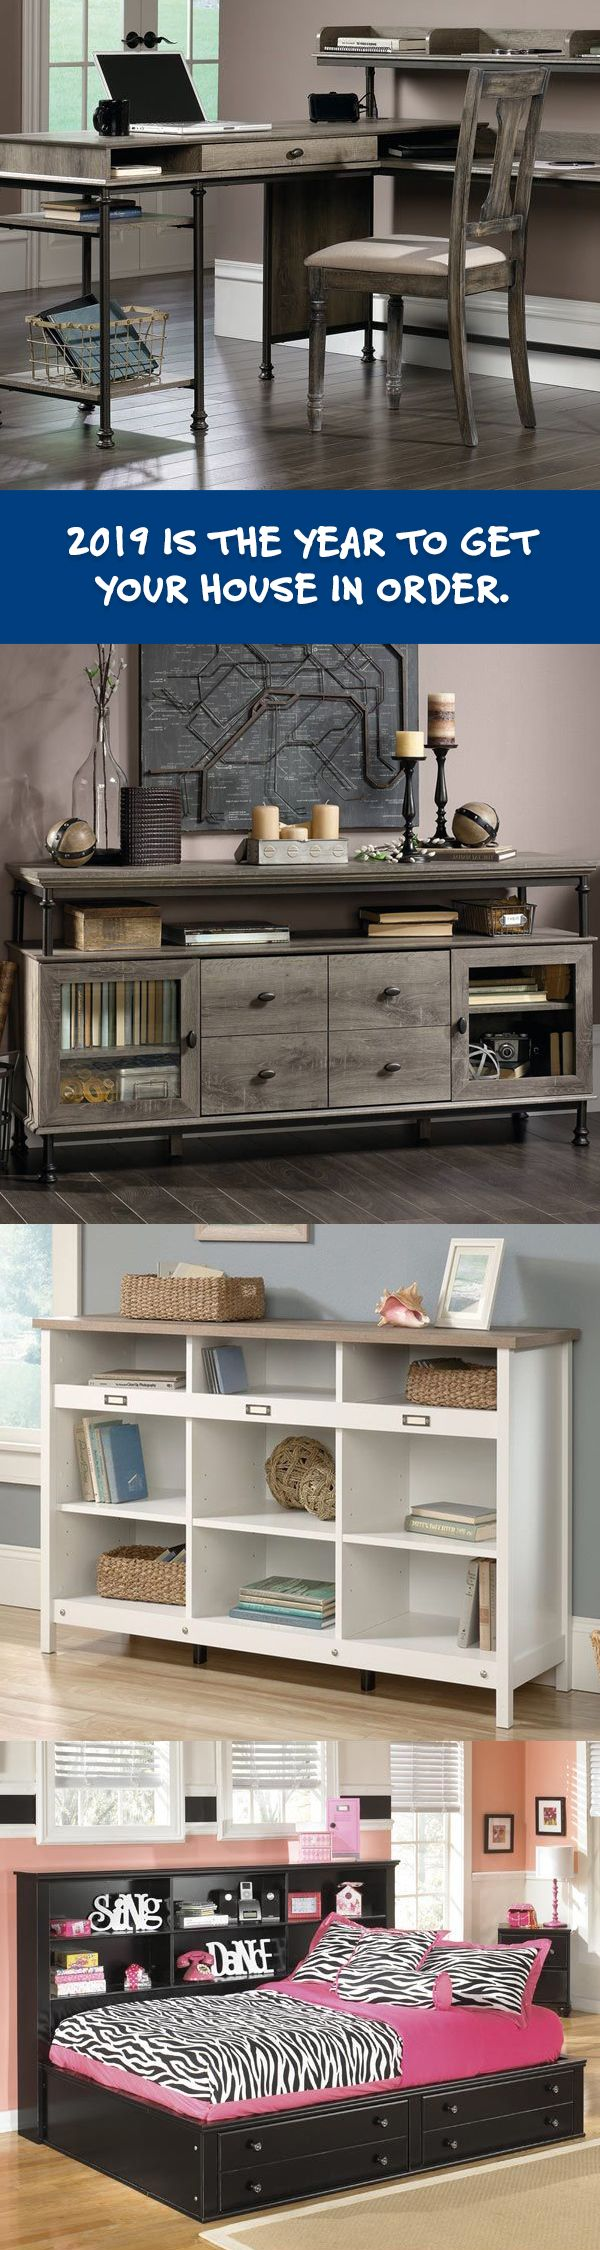 Shop Online At Weekendsonly Com Weekends Only Furniture And